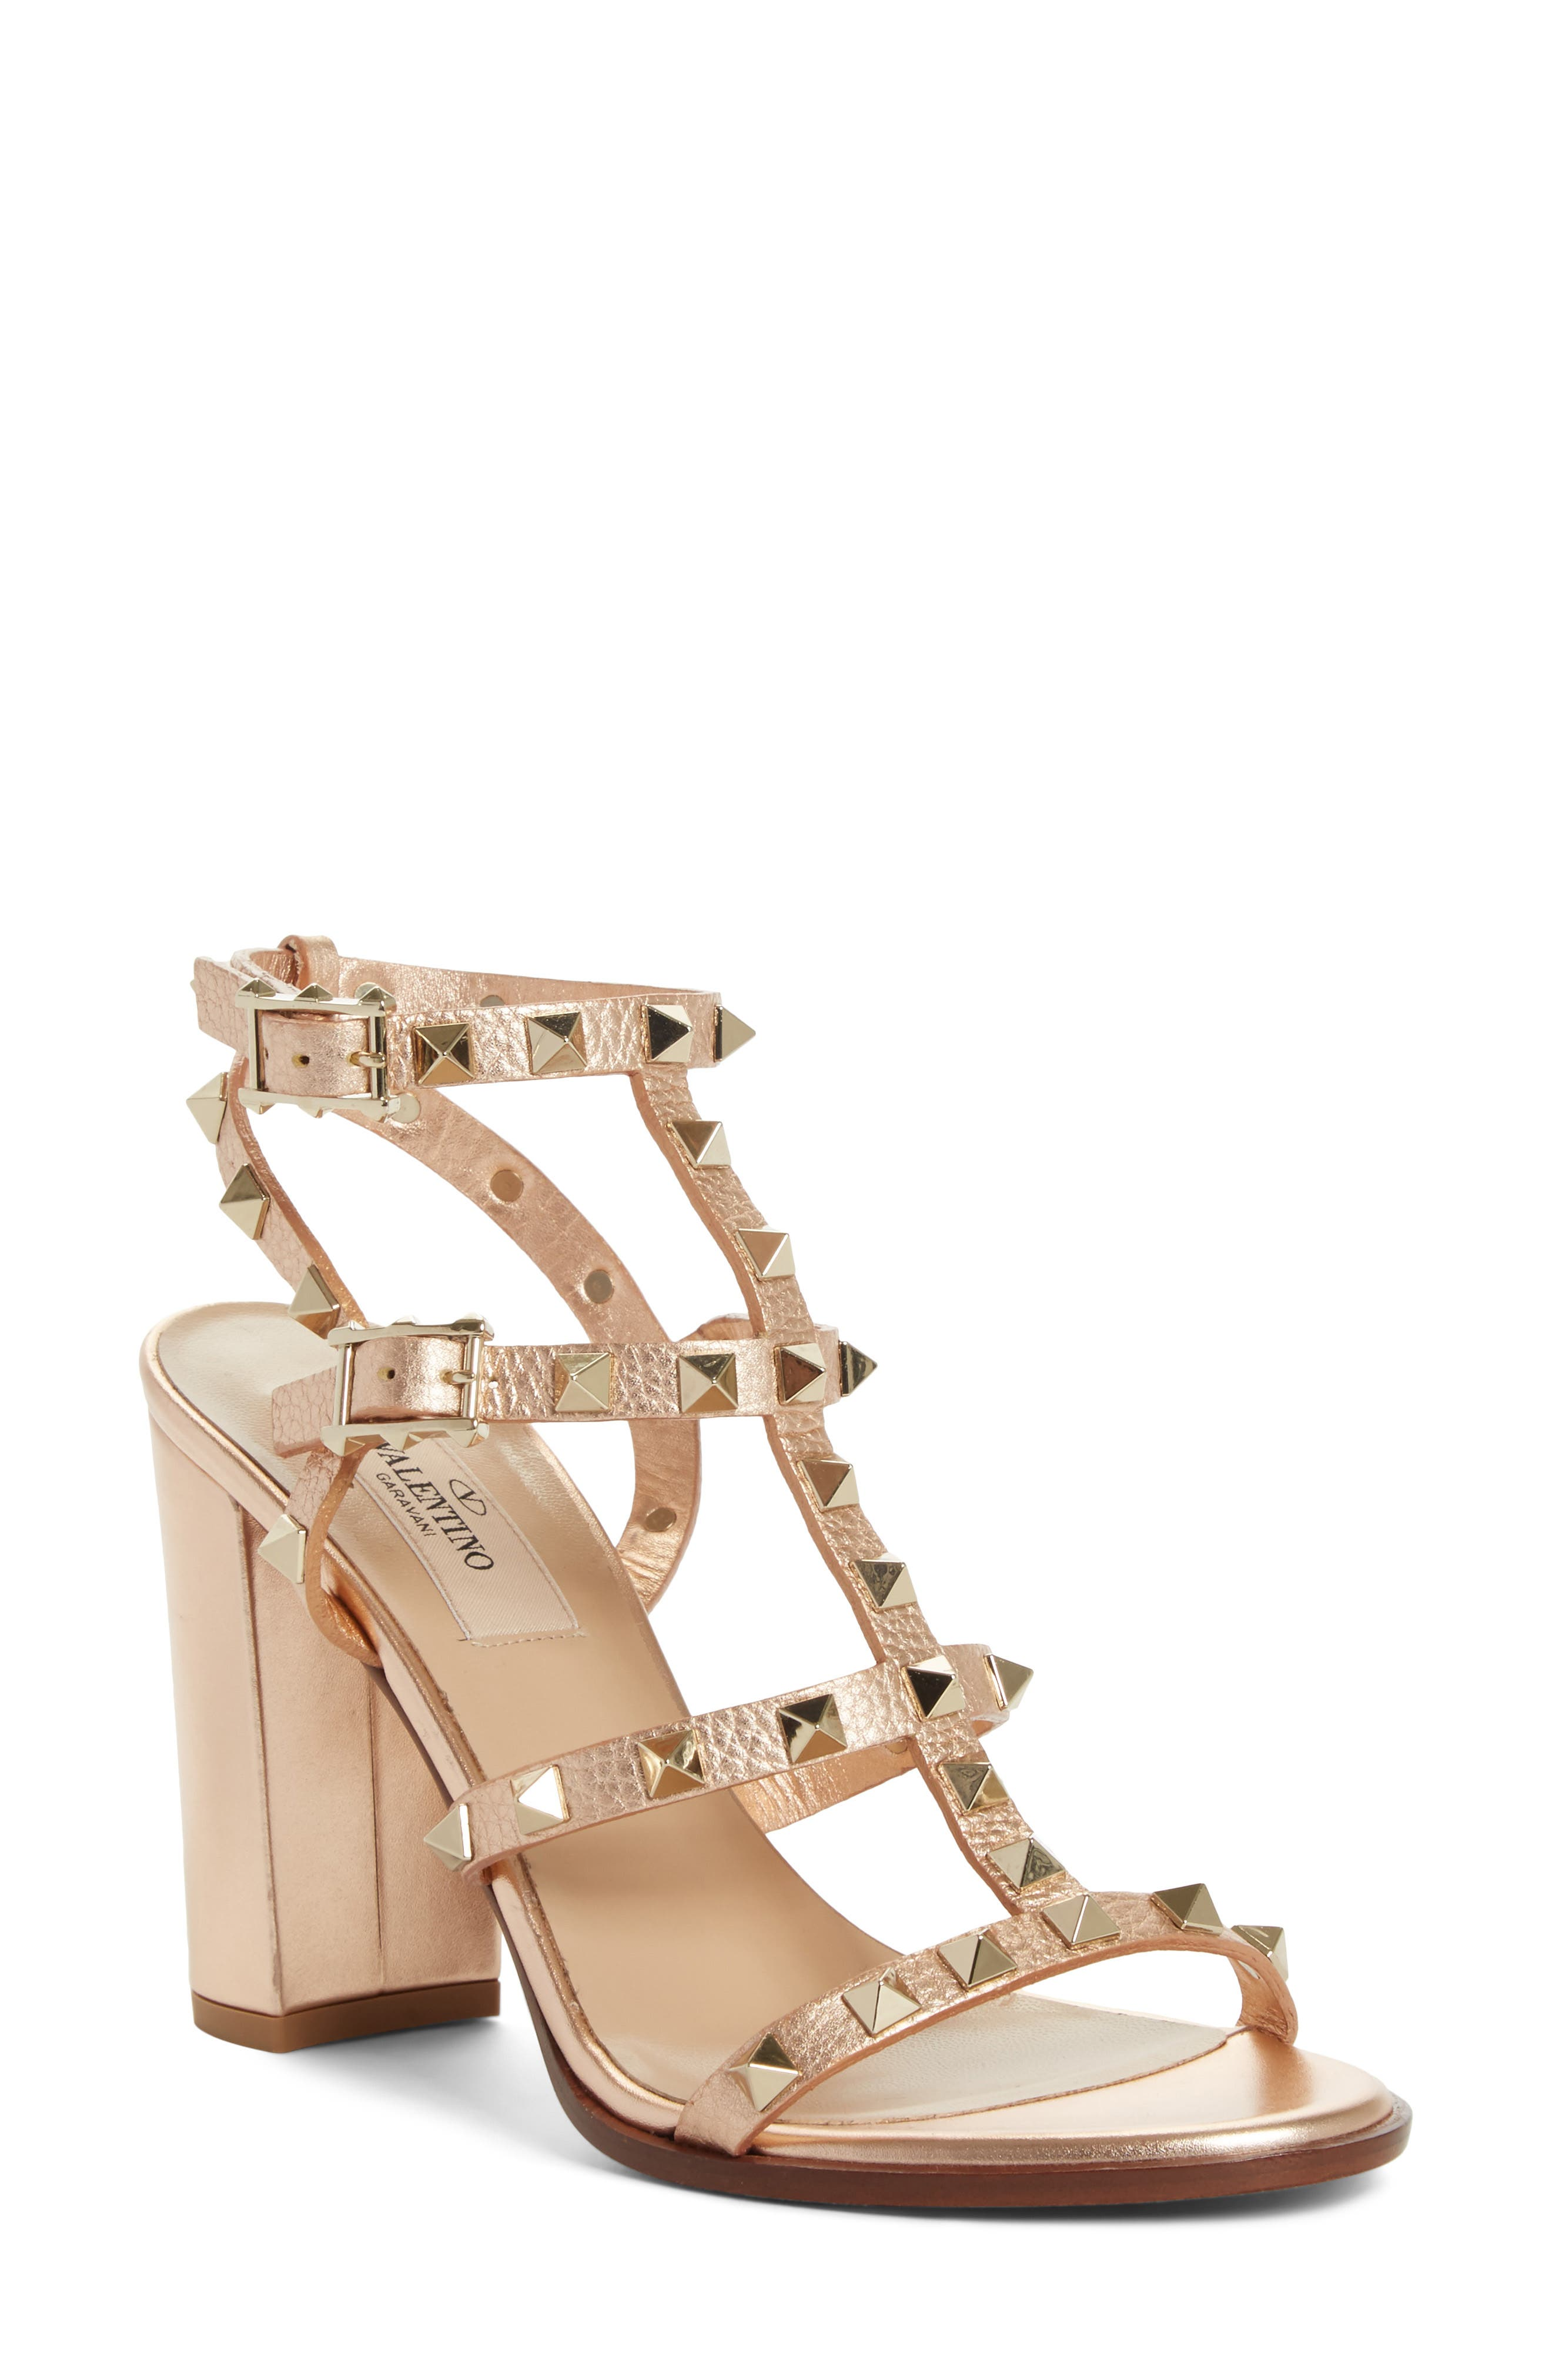 Alternate Image 1 Selected - VALENTINO GARAVANI Rockstud T-Strap Sandal (Women)